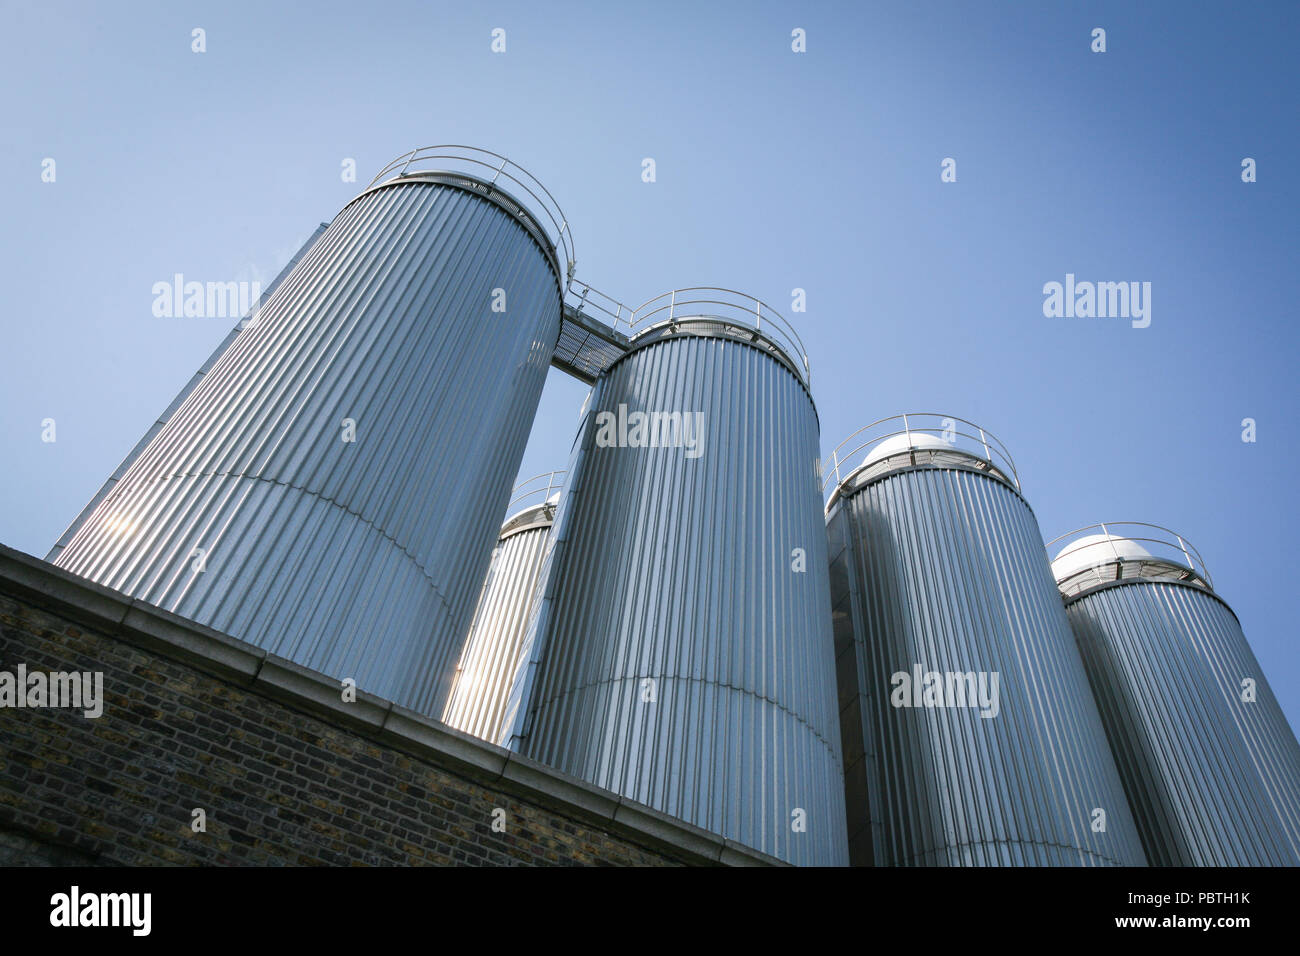 Steel storage containers outside the Guinness brewery in Dublin, Ireland, Europe. Stock Photo